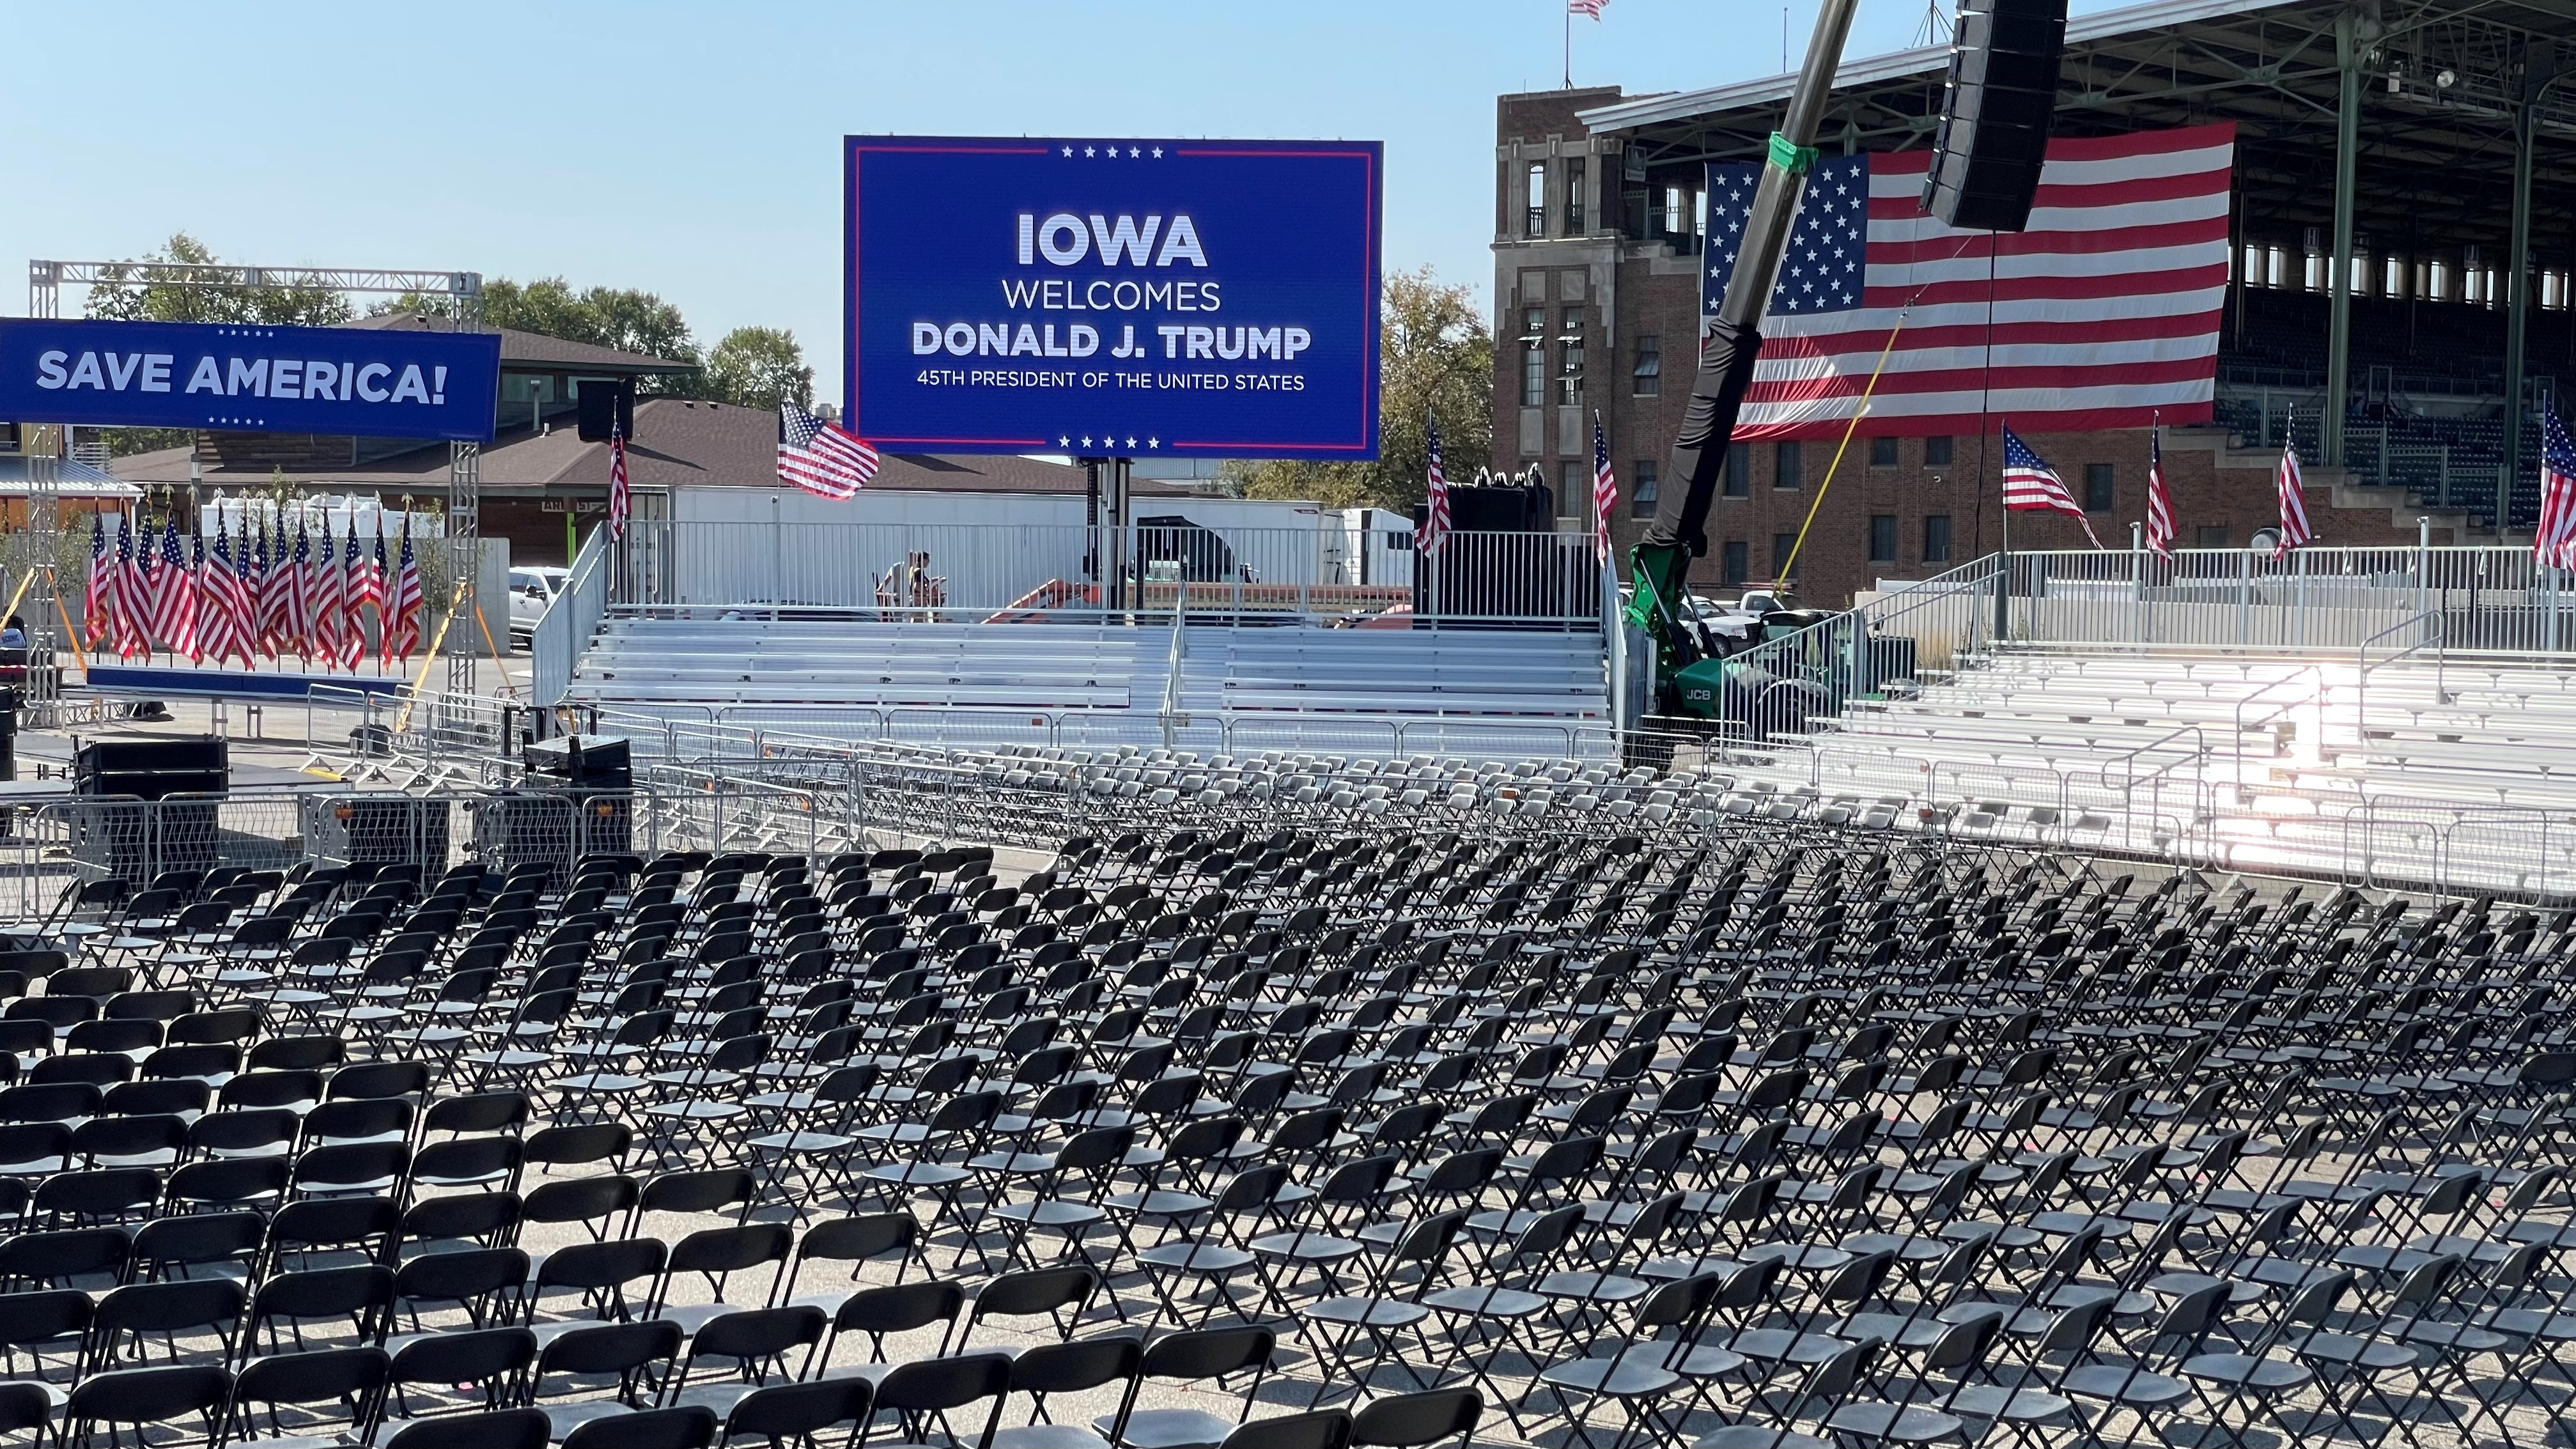 Trump's team in Iowa has eyes on 2022, but their presence gives him an early 2024 leg up